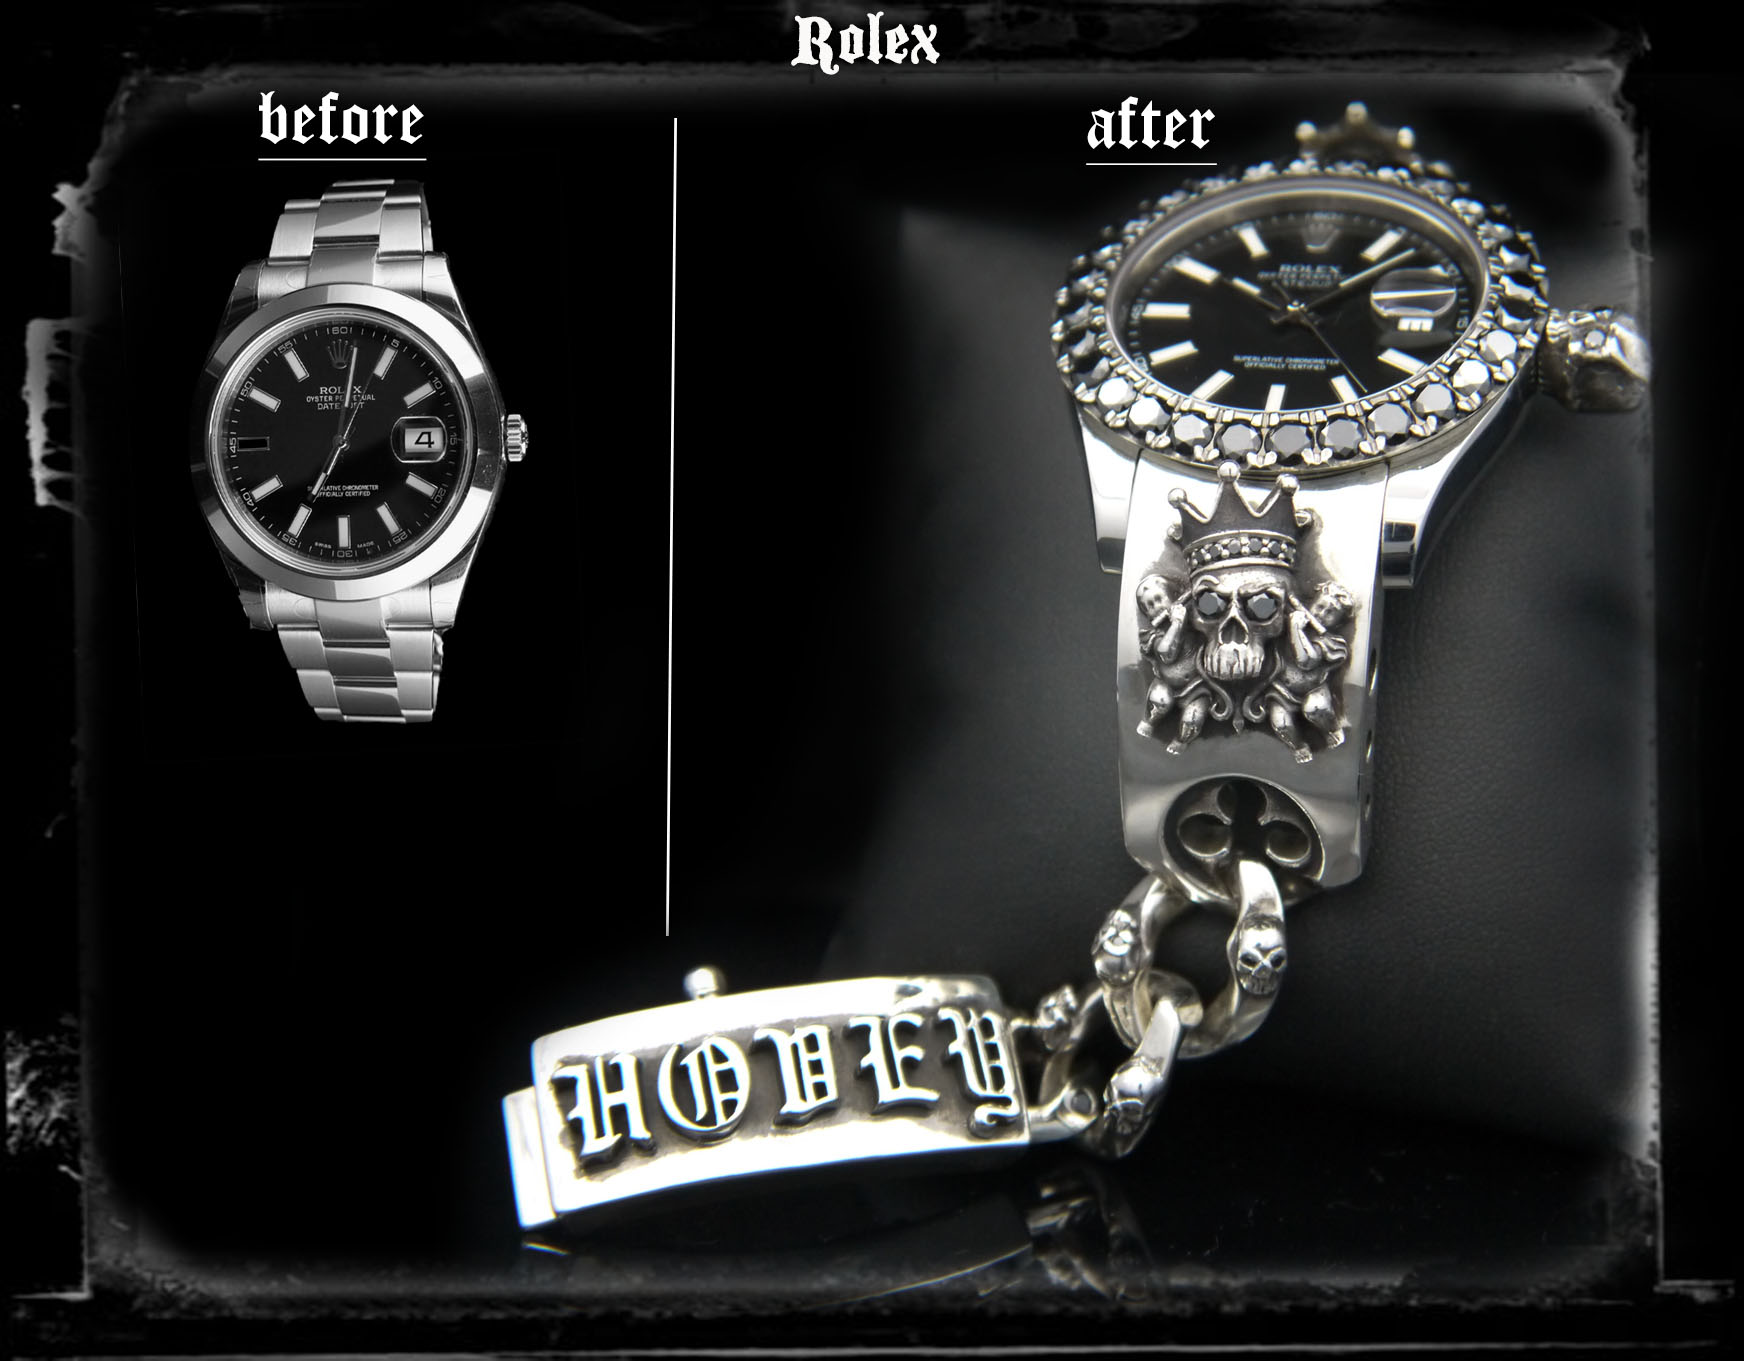 rolex-henchmen-customize-watch-before-after-set.jpg